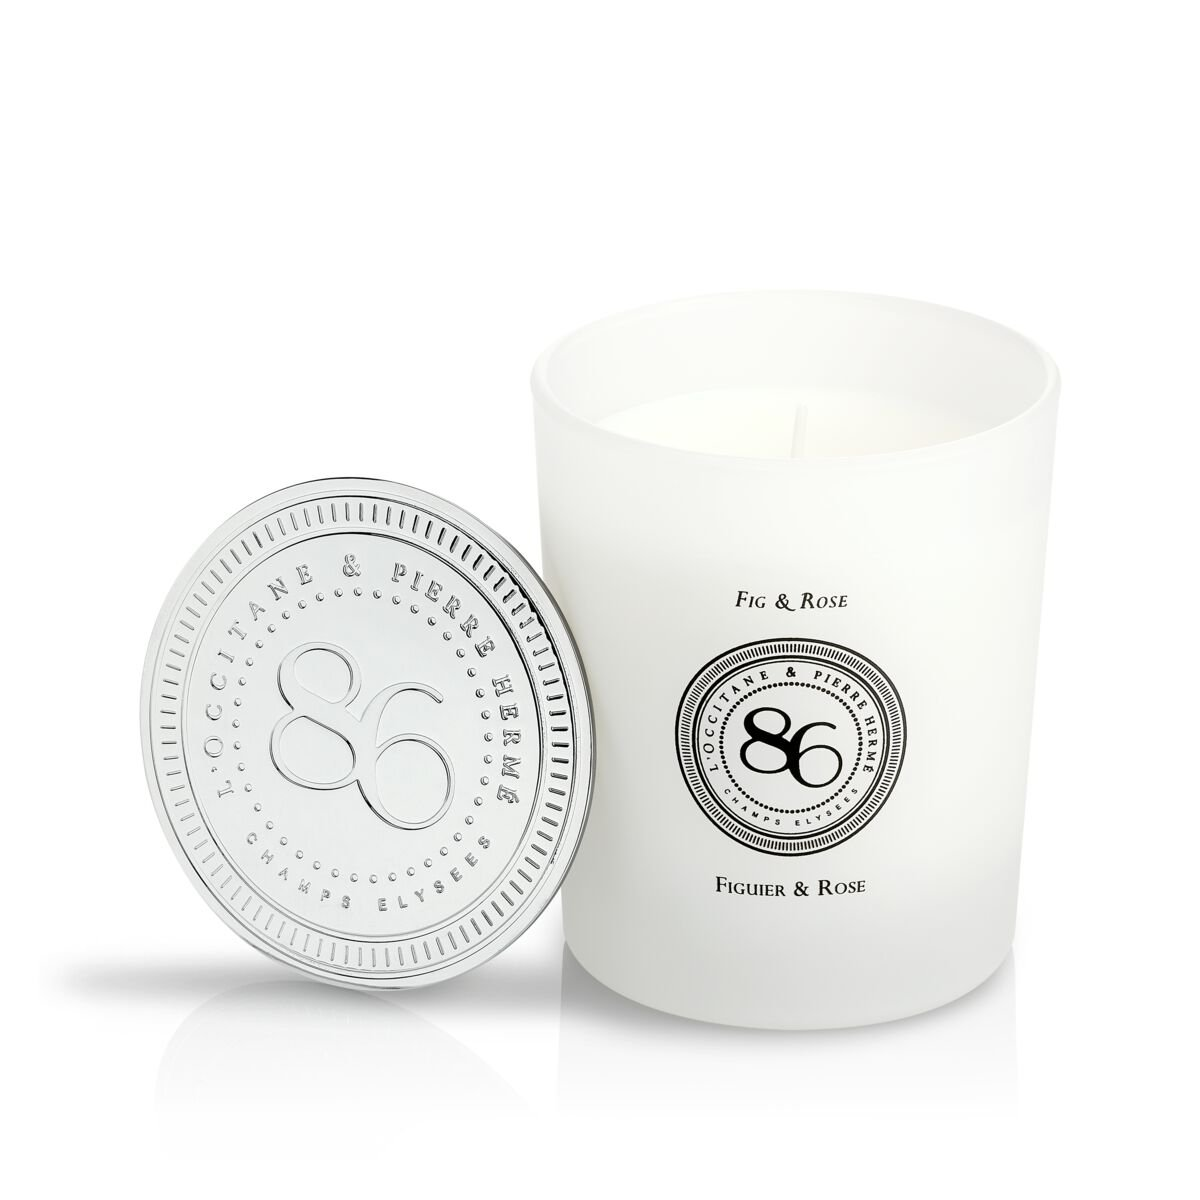 Fig & Rose Scented Candle 8.4 oz. from L'OCCITANE